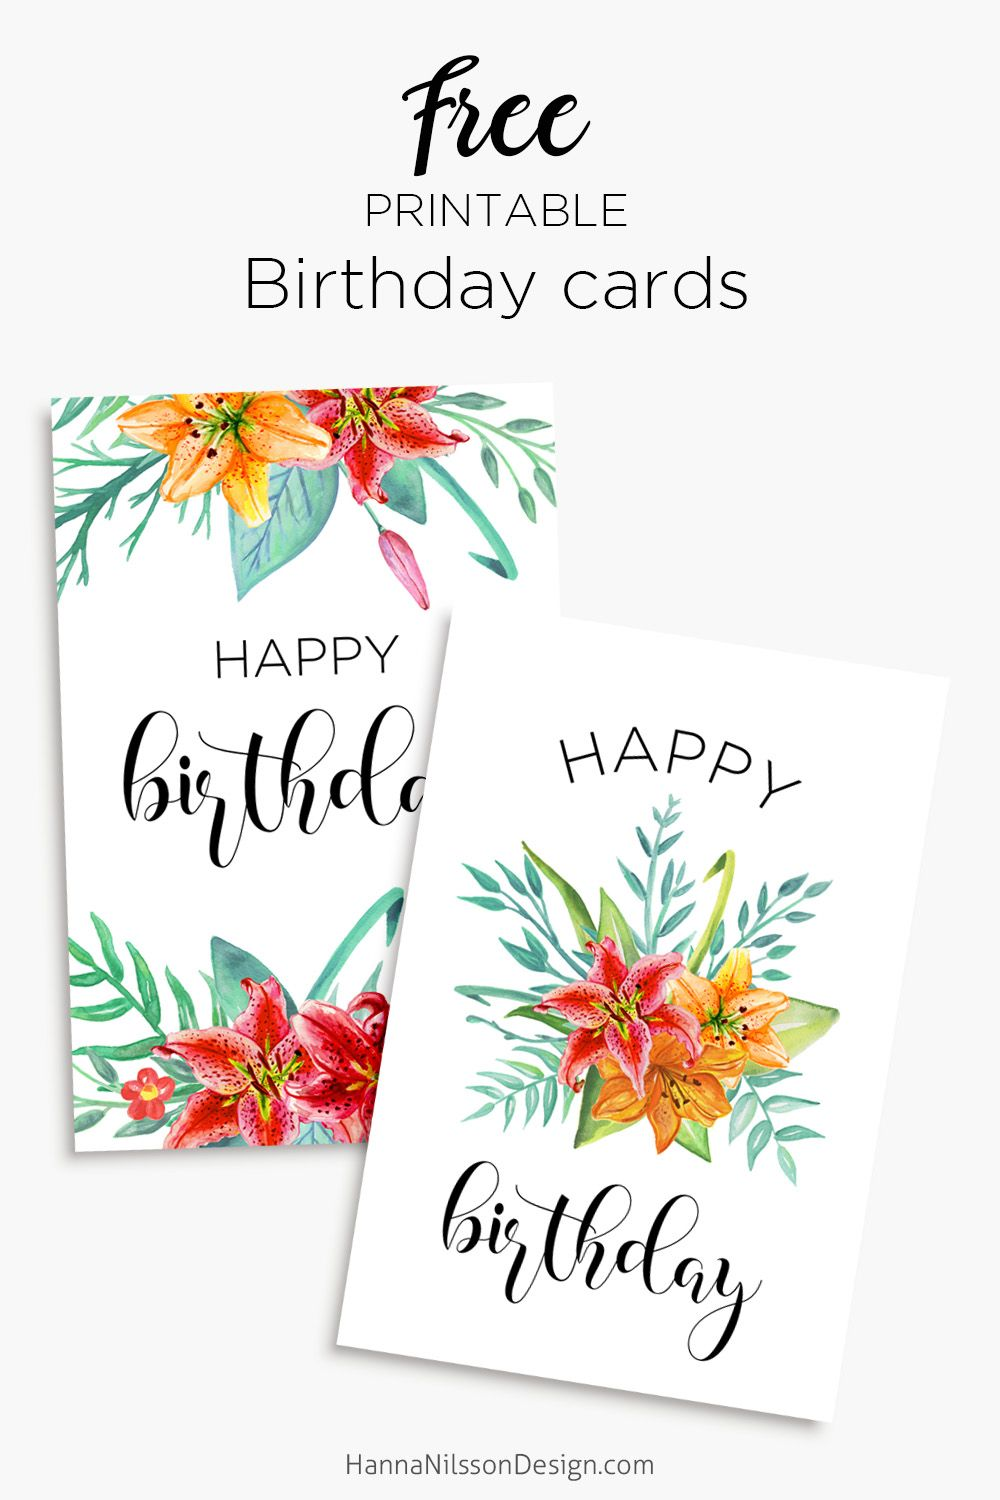 Printable Floral Birthday Cards Tags Gift Box Free Printable Birthday Cards Birthday Card Printable Birthday Cards For Mom